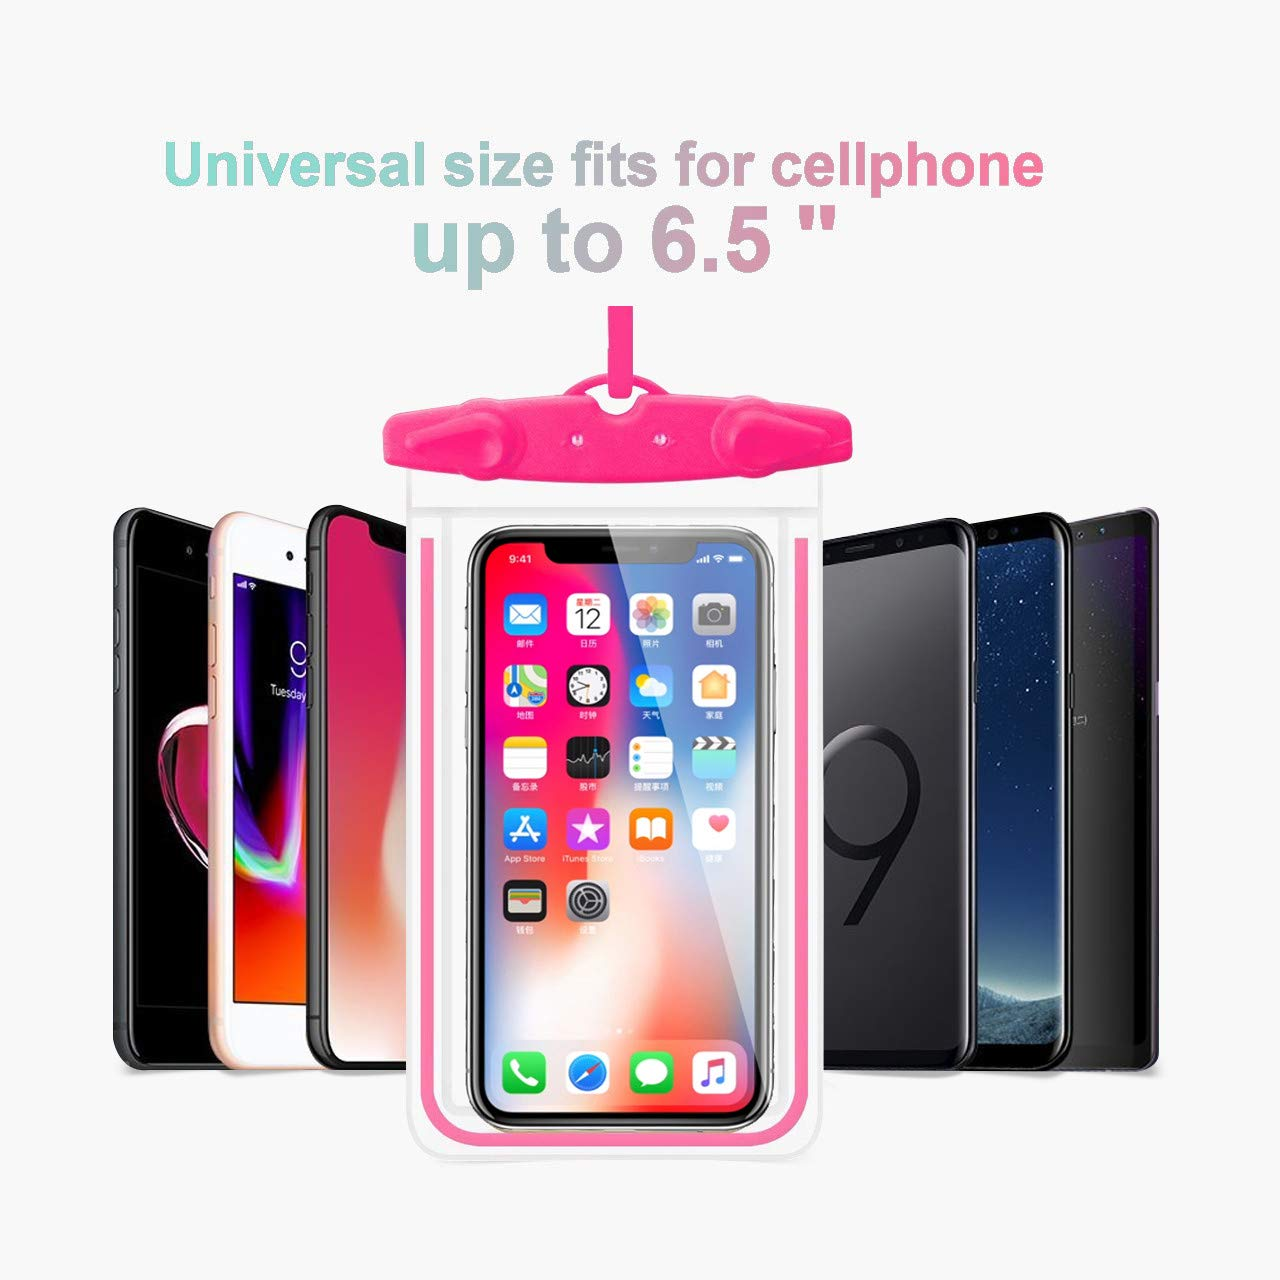 Waterproof Case WJZXTEK Dry Bag Phone Pouch for Outdoor Water sports Case With Sensitive Screen Perfect For iPhone X 8 7plus 6S 6S Plus Note 5 S7 S6 Edge LG phones Up to 6 inch (Blue+Orange+Red+Black)